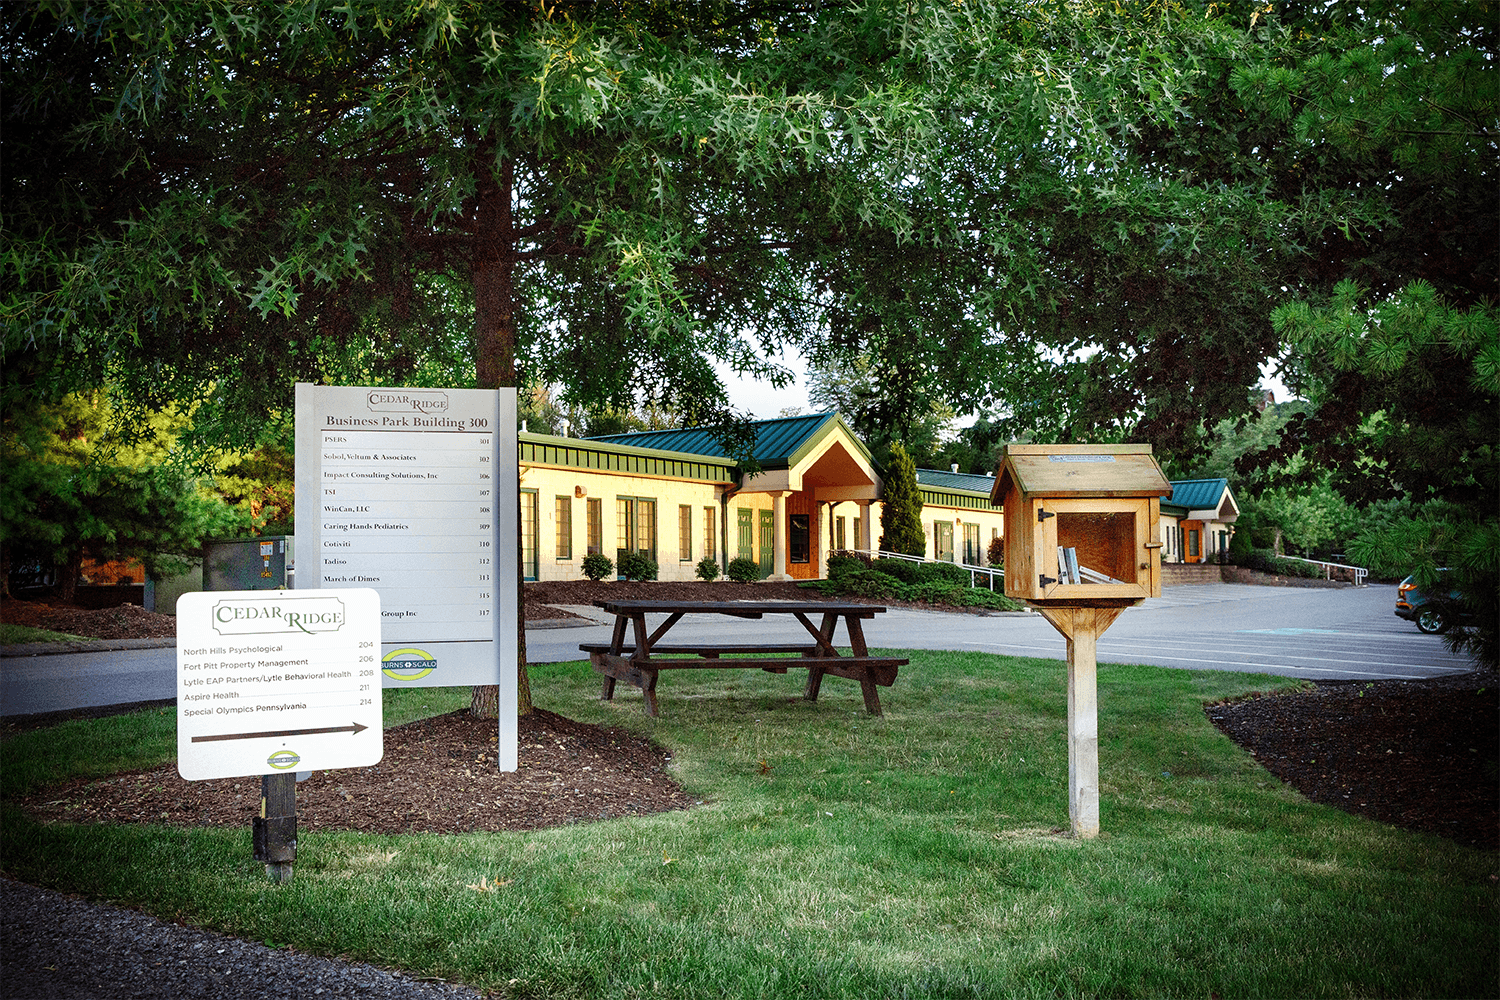 grass area in front of office building with signs and a picnic table